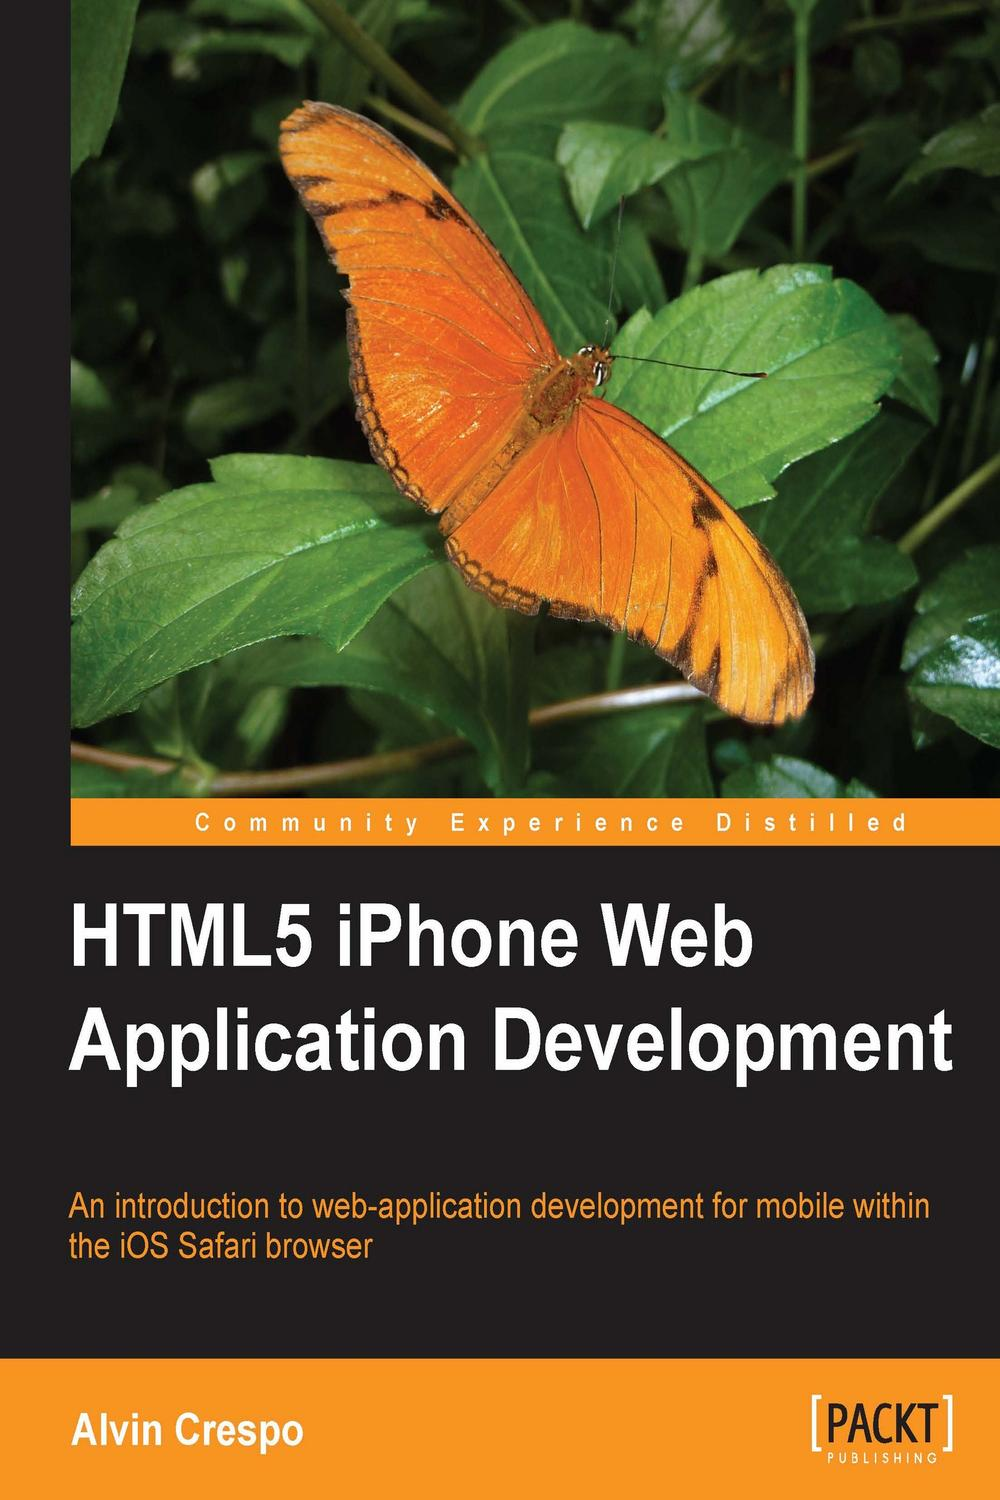 Iphone Application Development Pdf